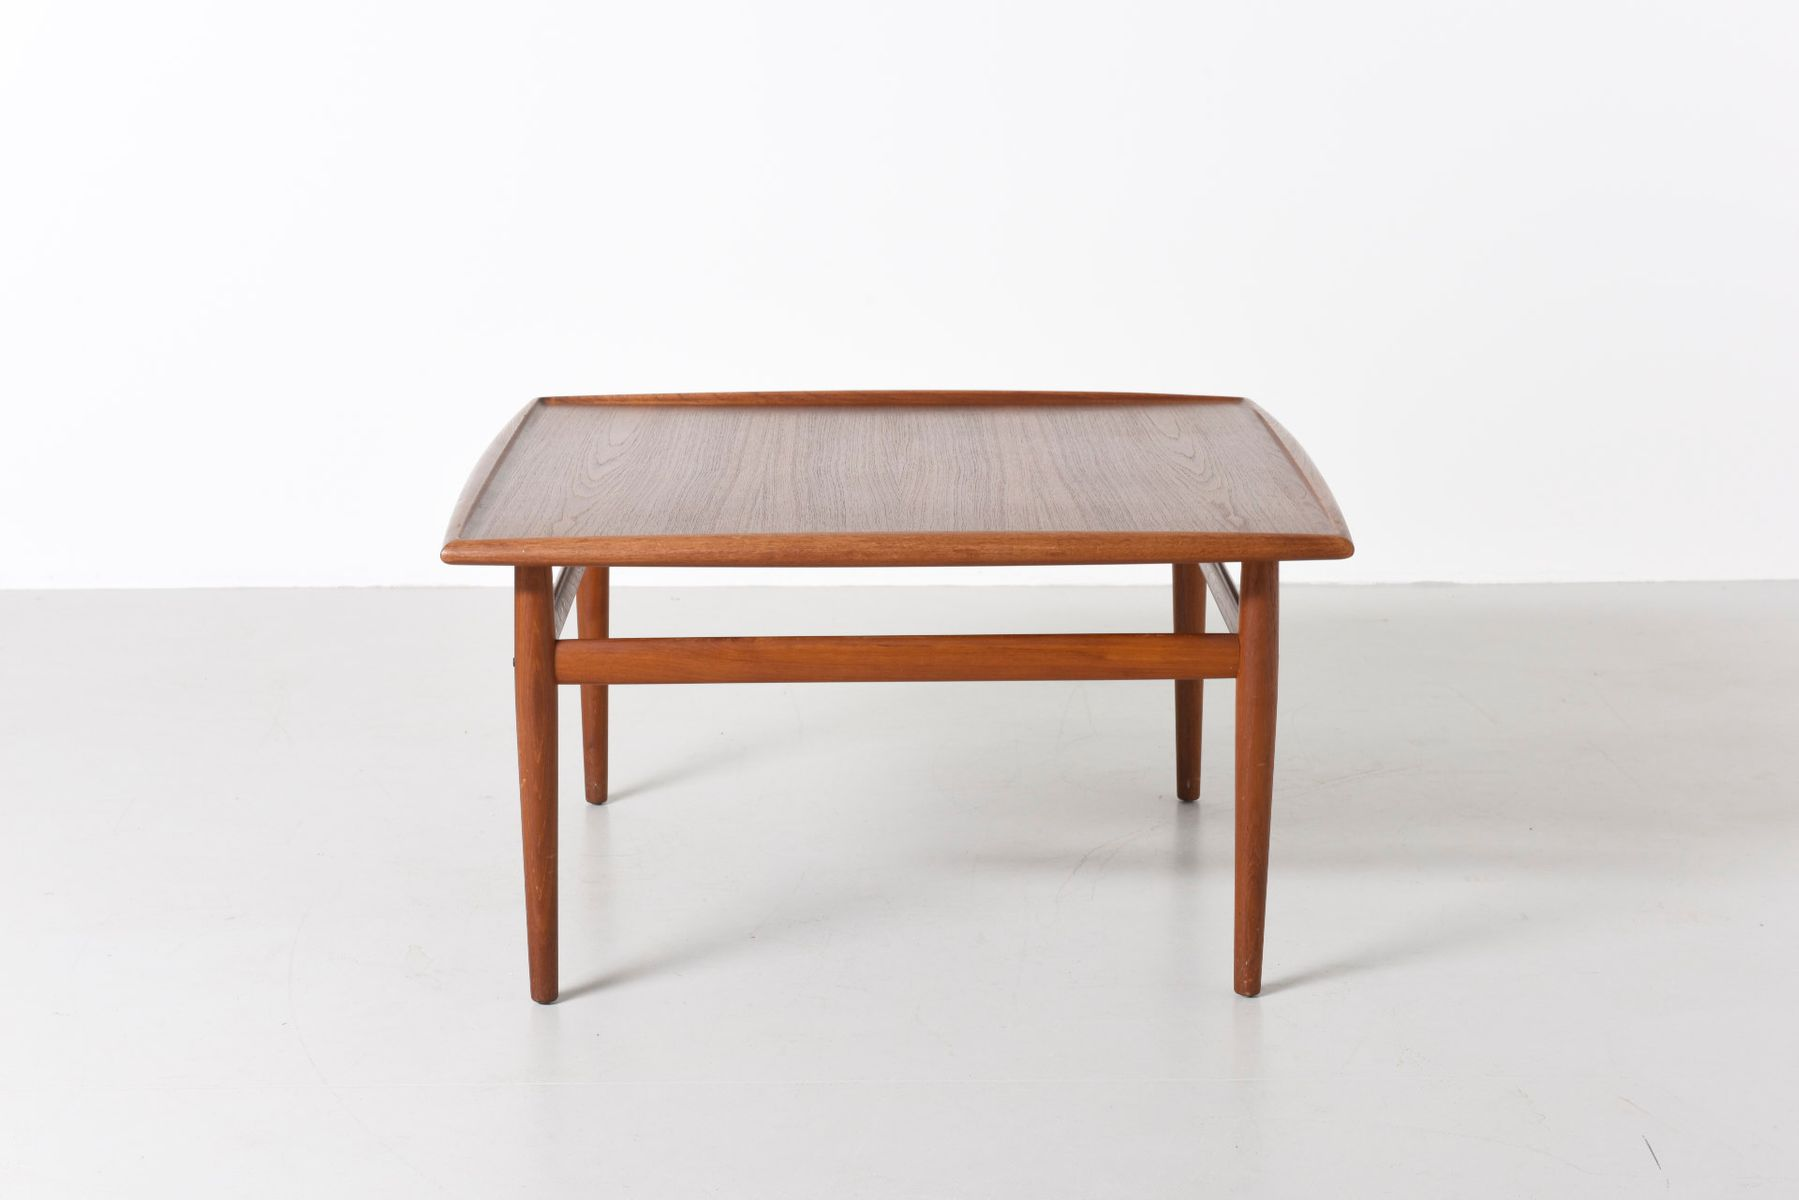 Vintage Coffee Table by Grete Jalk for France and S¸n for sale at